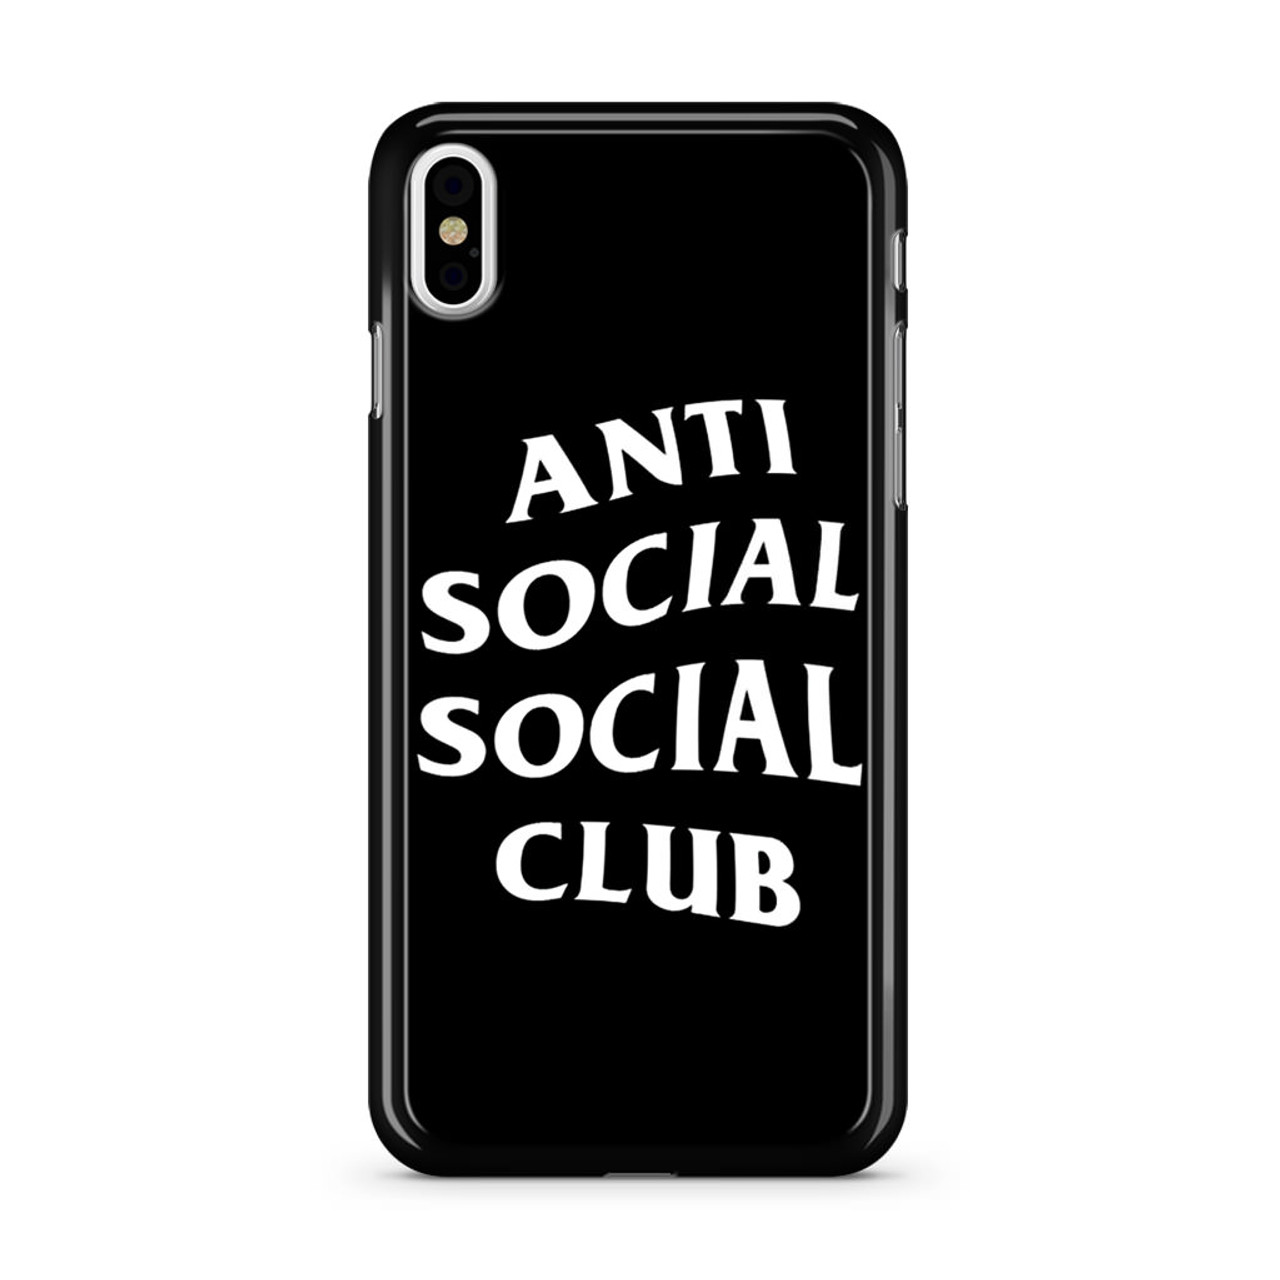 Anti Social Club Black IPhone X Case